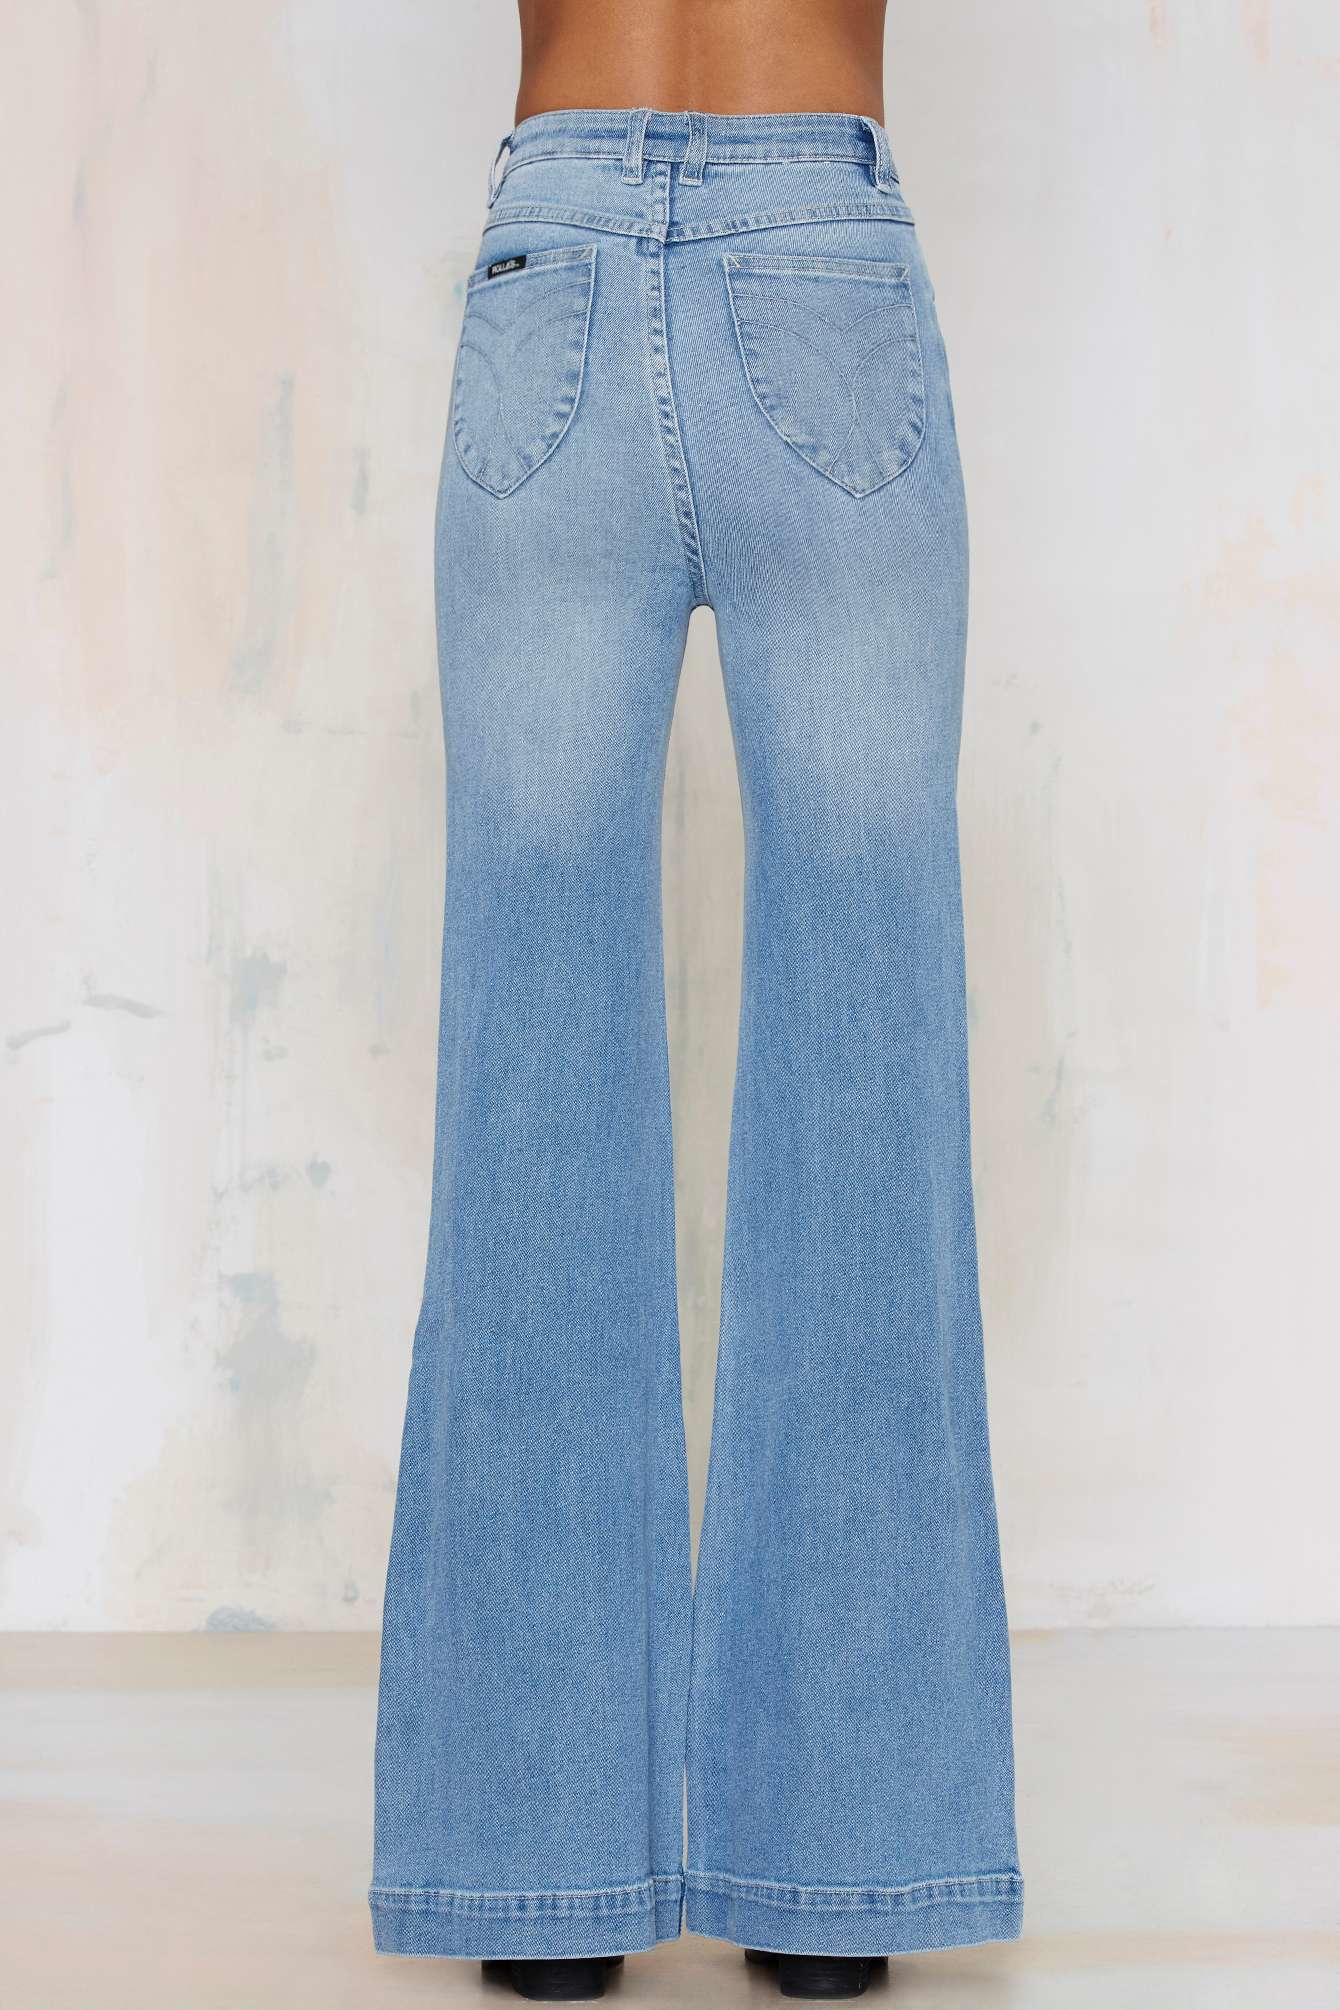 Nasty Gal Rolla S Eastcoast High Waisted Flare Jeans In